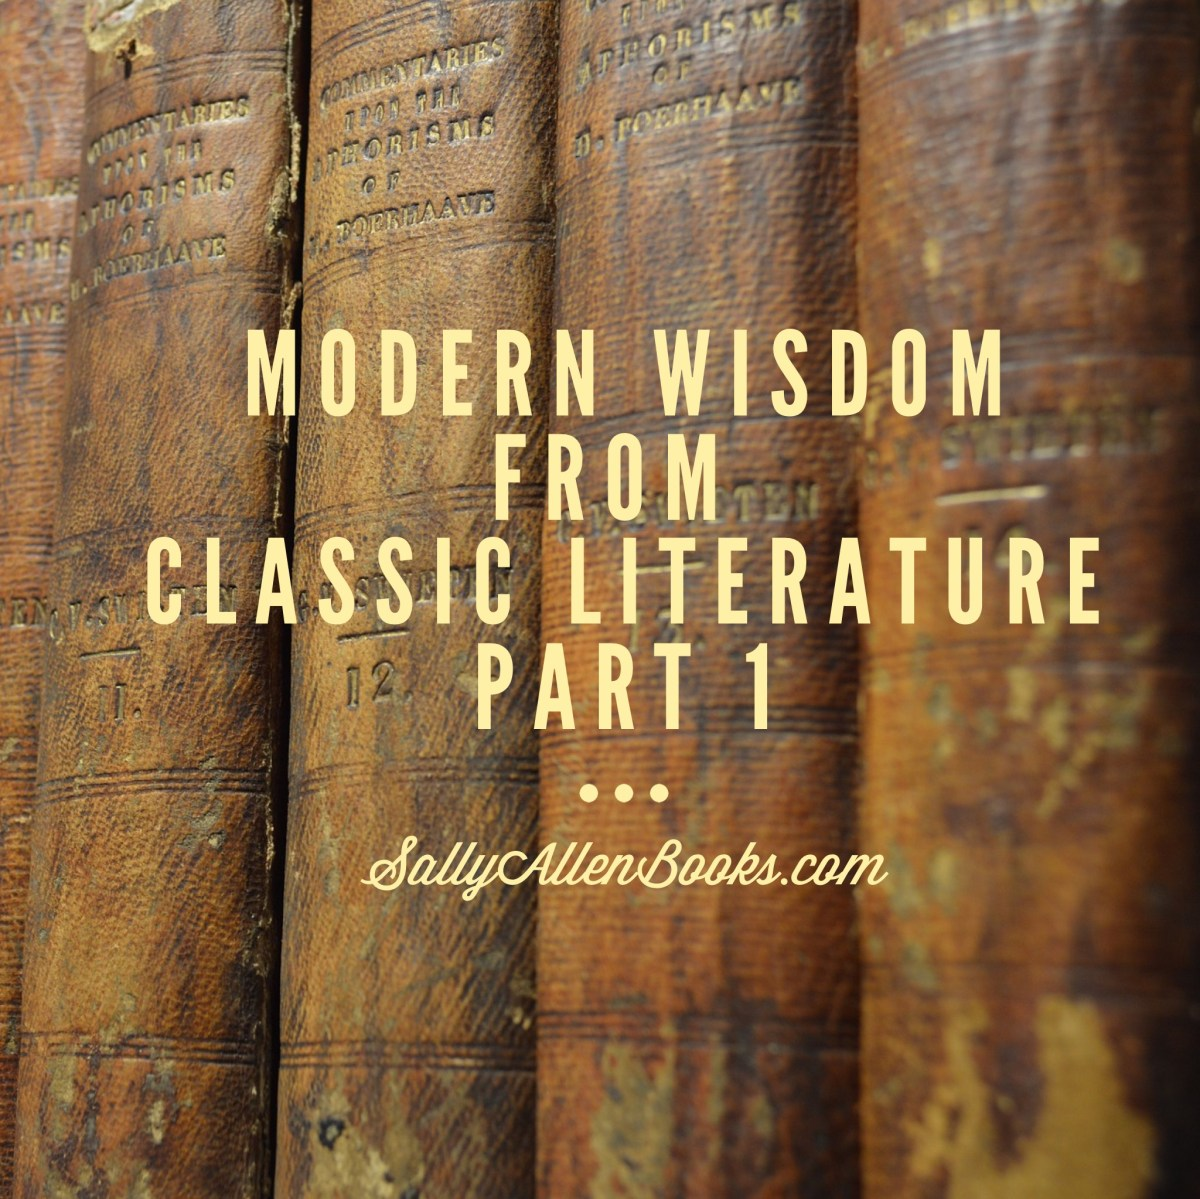 Modern Wisdom from Classic Literature, Part 1